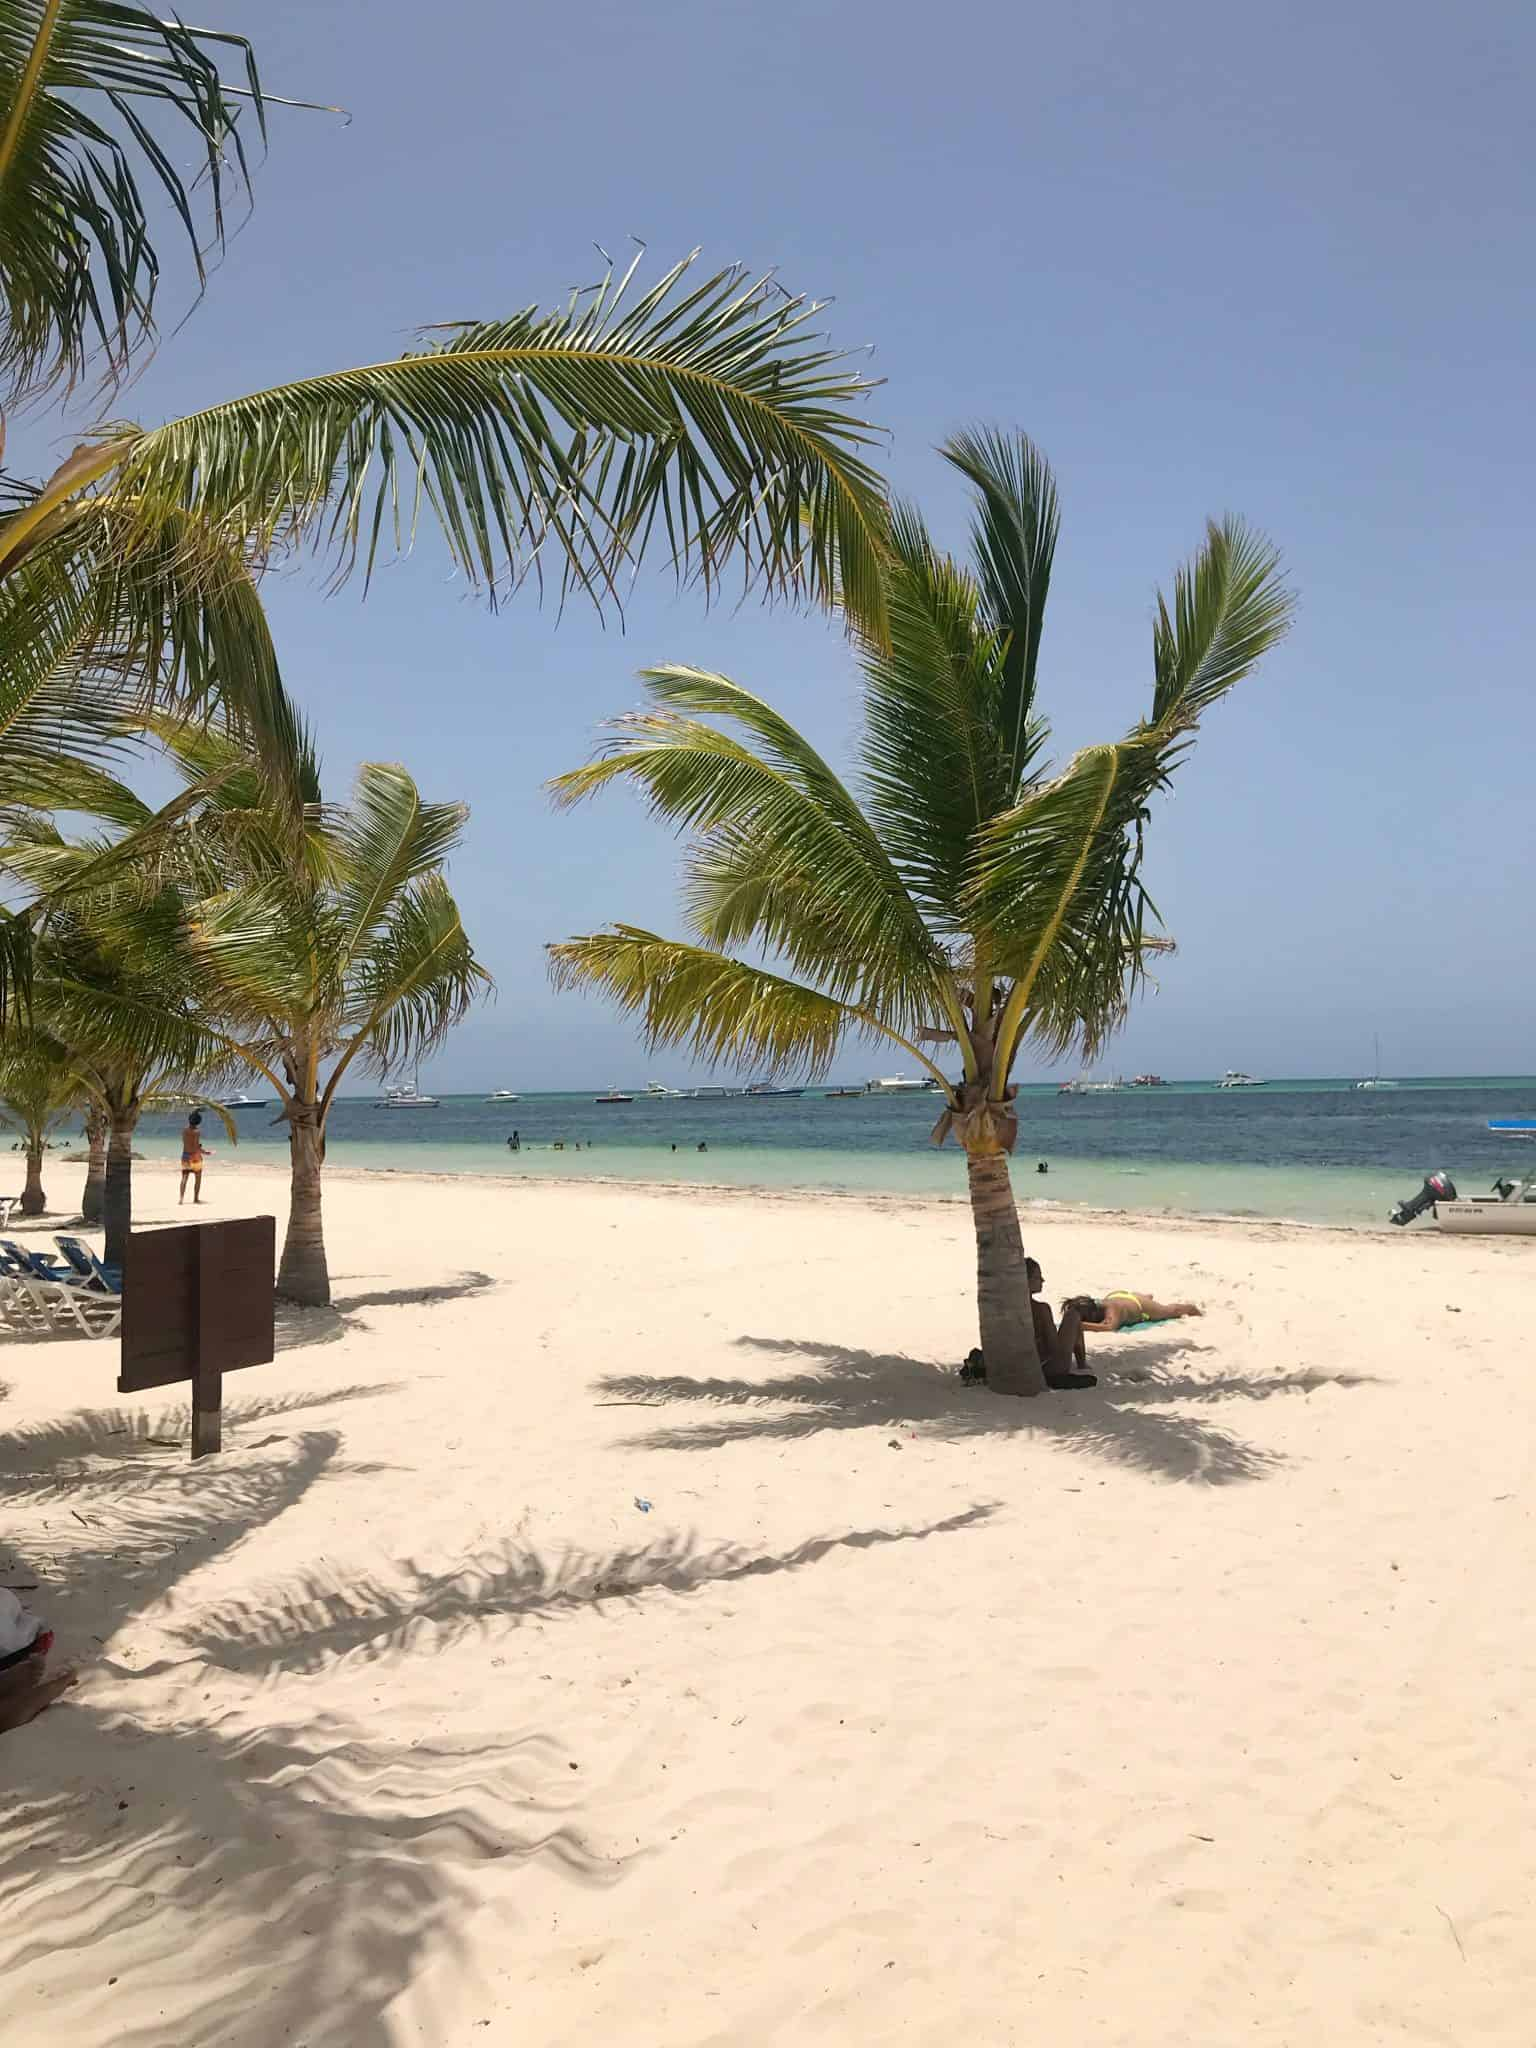 Our Trip To Punta Cana - Dominican Republic